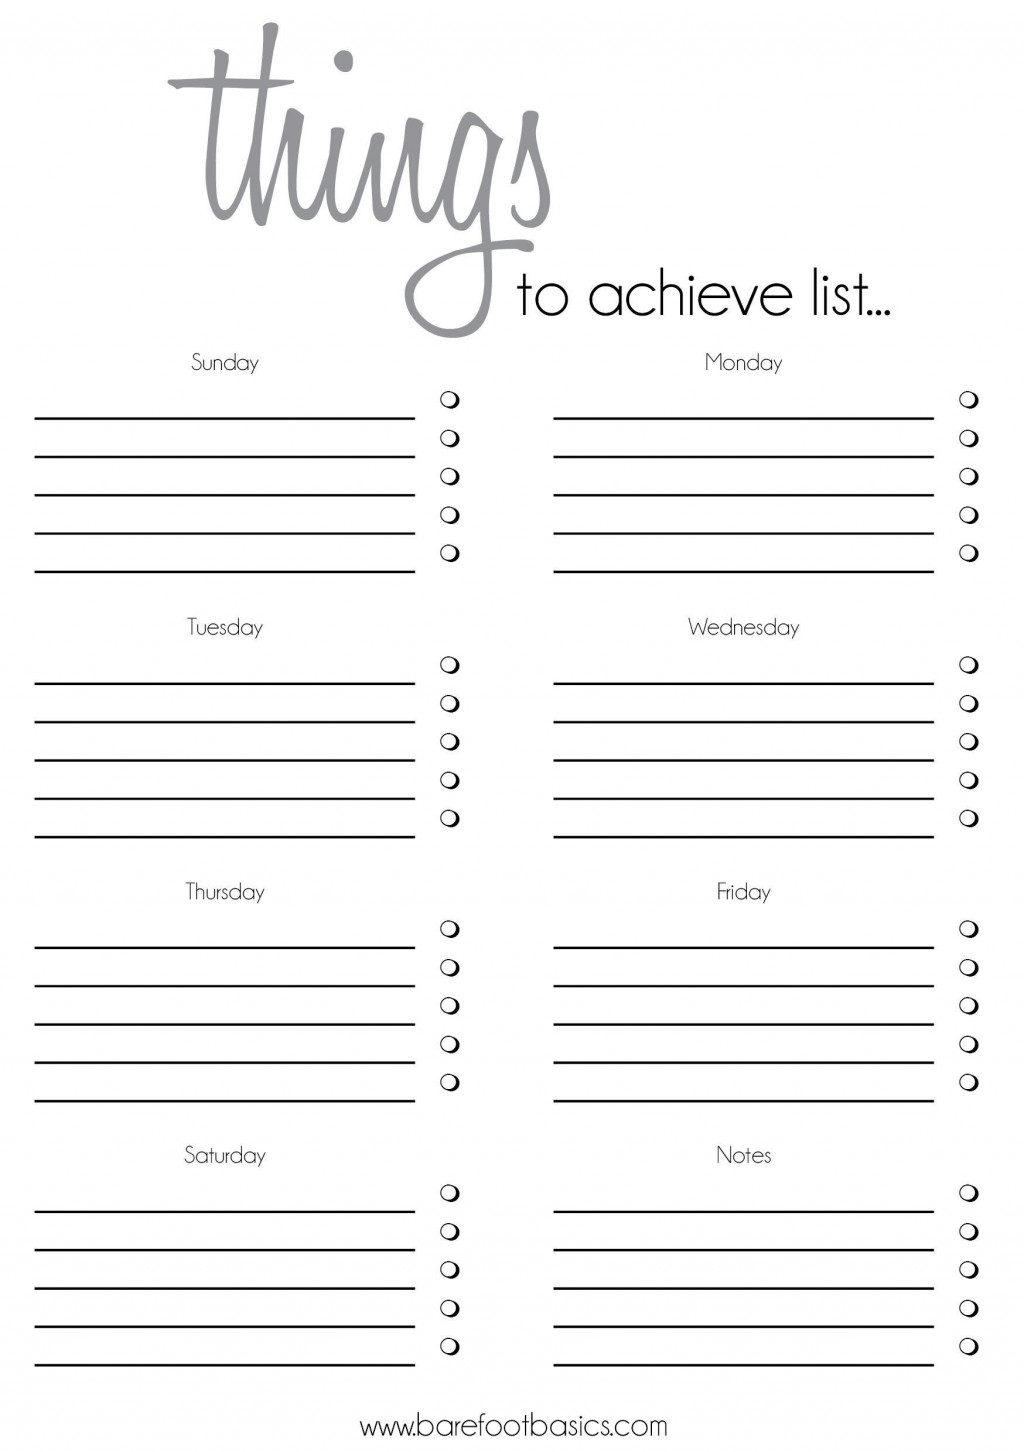 003 Formidable To Do List Template Free Idea Large